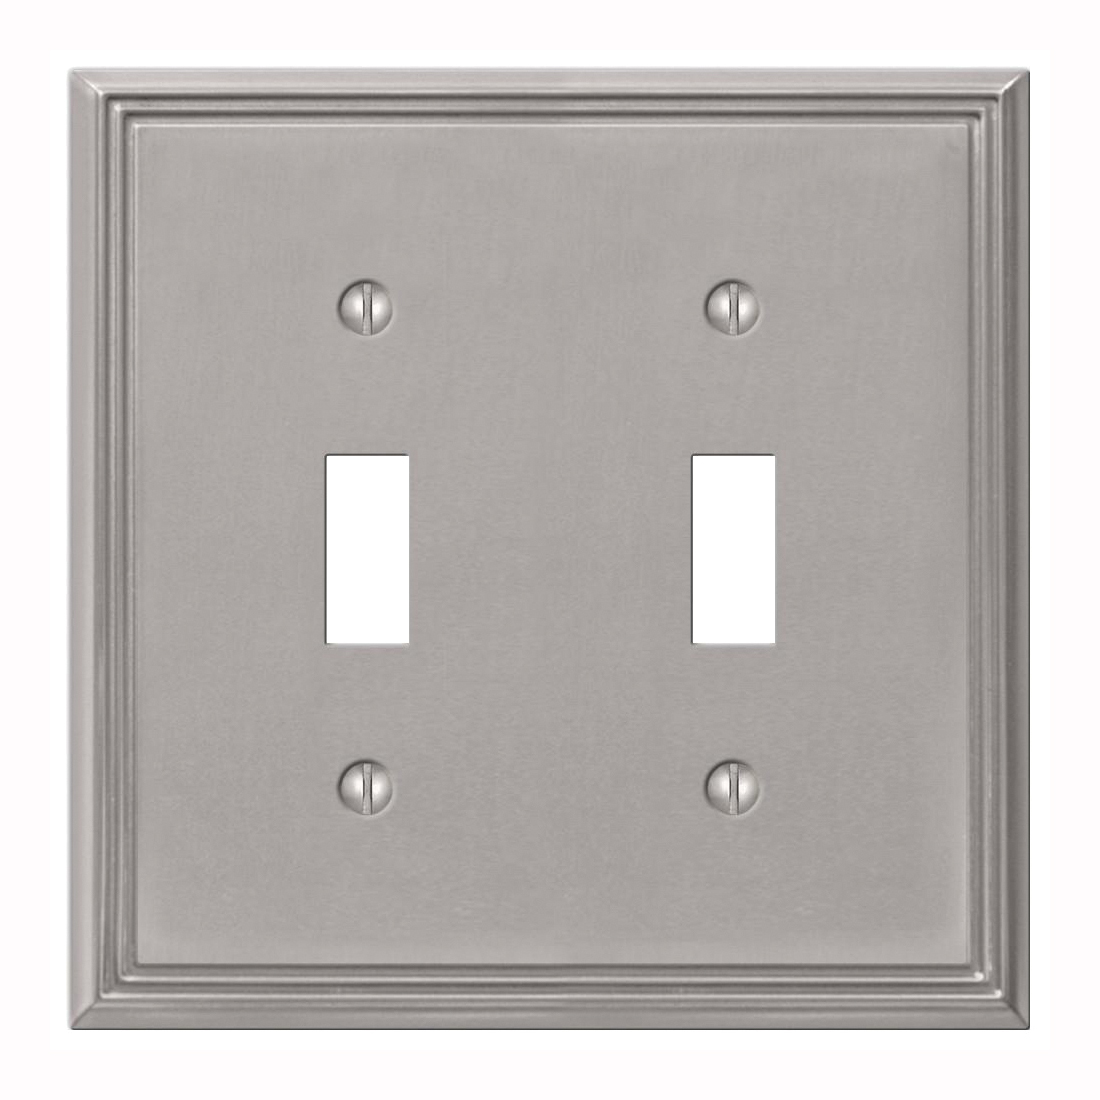 Picture of Amerelle 77TTBN Wallplate, 4-3/4 in L, 4-3/4 in W, 2-Gang, Metal, Brushed Nickel